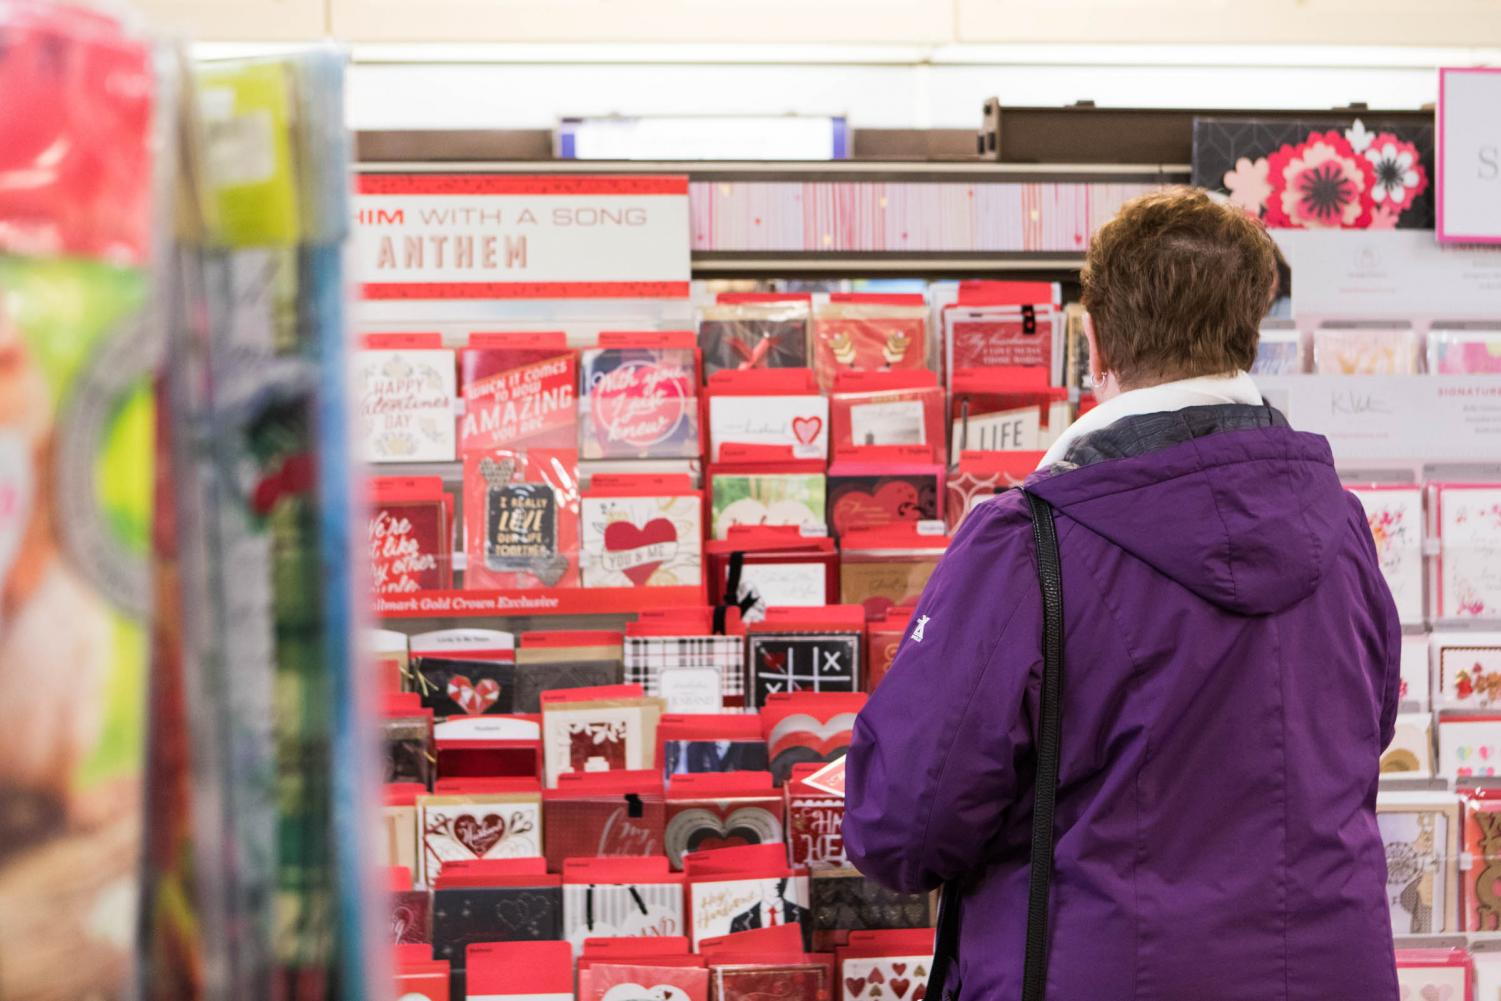 A woman shops for Valentine's Day cards at the Hallmark store at the Academy Plaza Shopping Center in Northeast Philadelphia on Feb. 2, 2018.